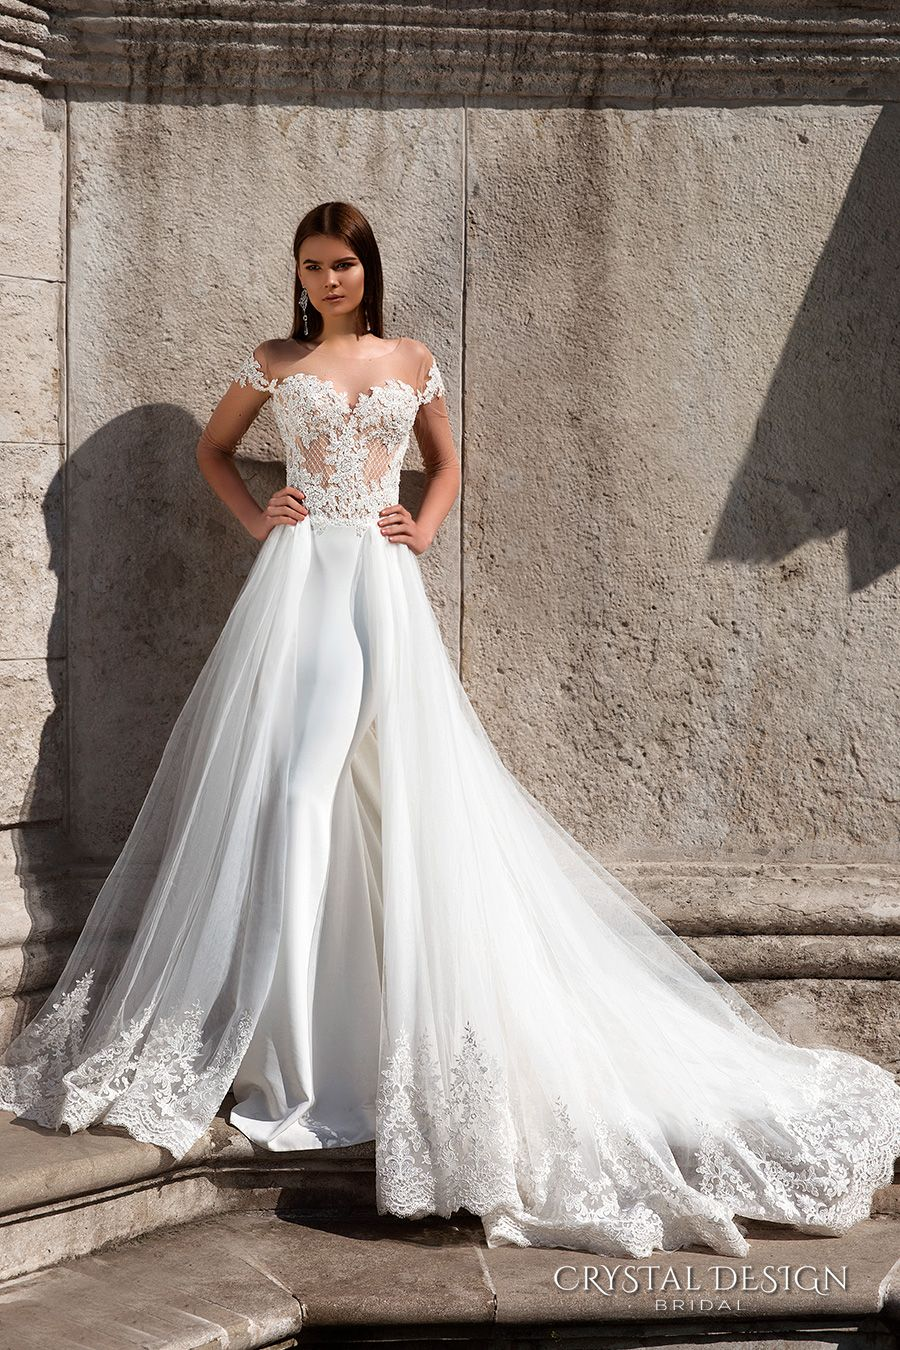 Crystal design 2016 wedding dresses lace bodice wedding dress crystal design 2016 wedding dresses junglespirit Images